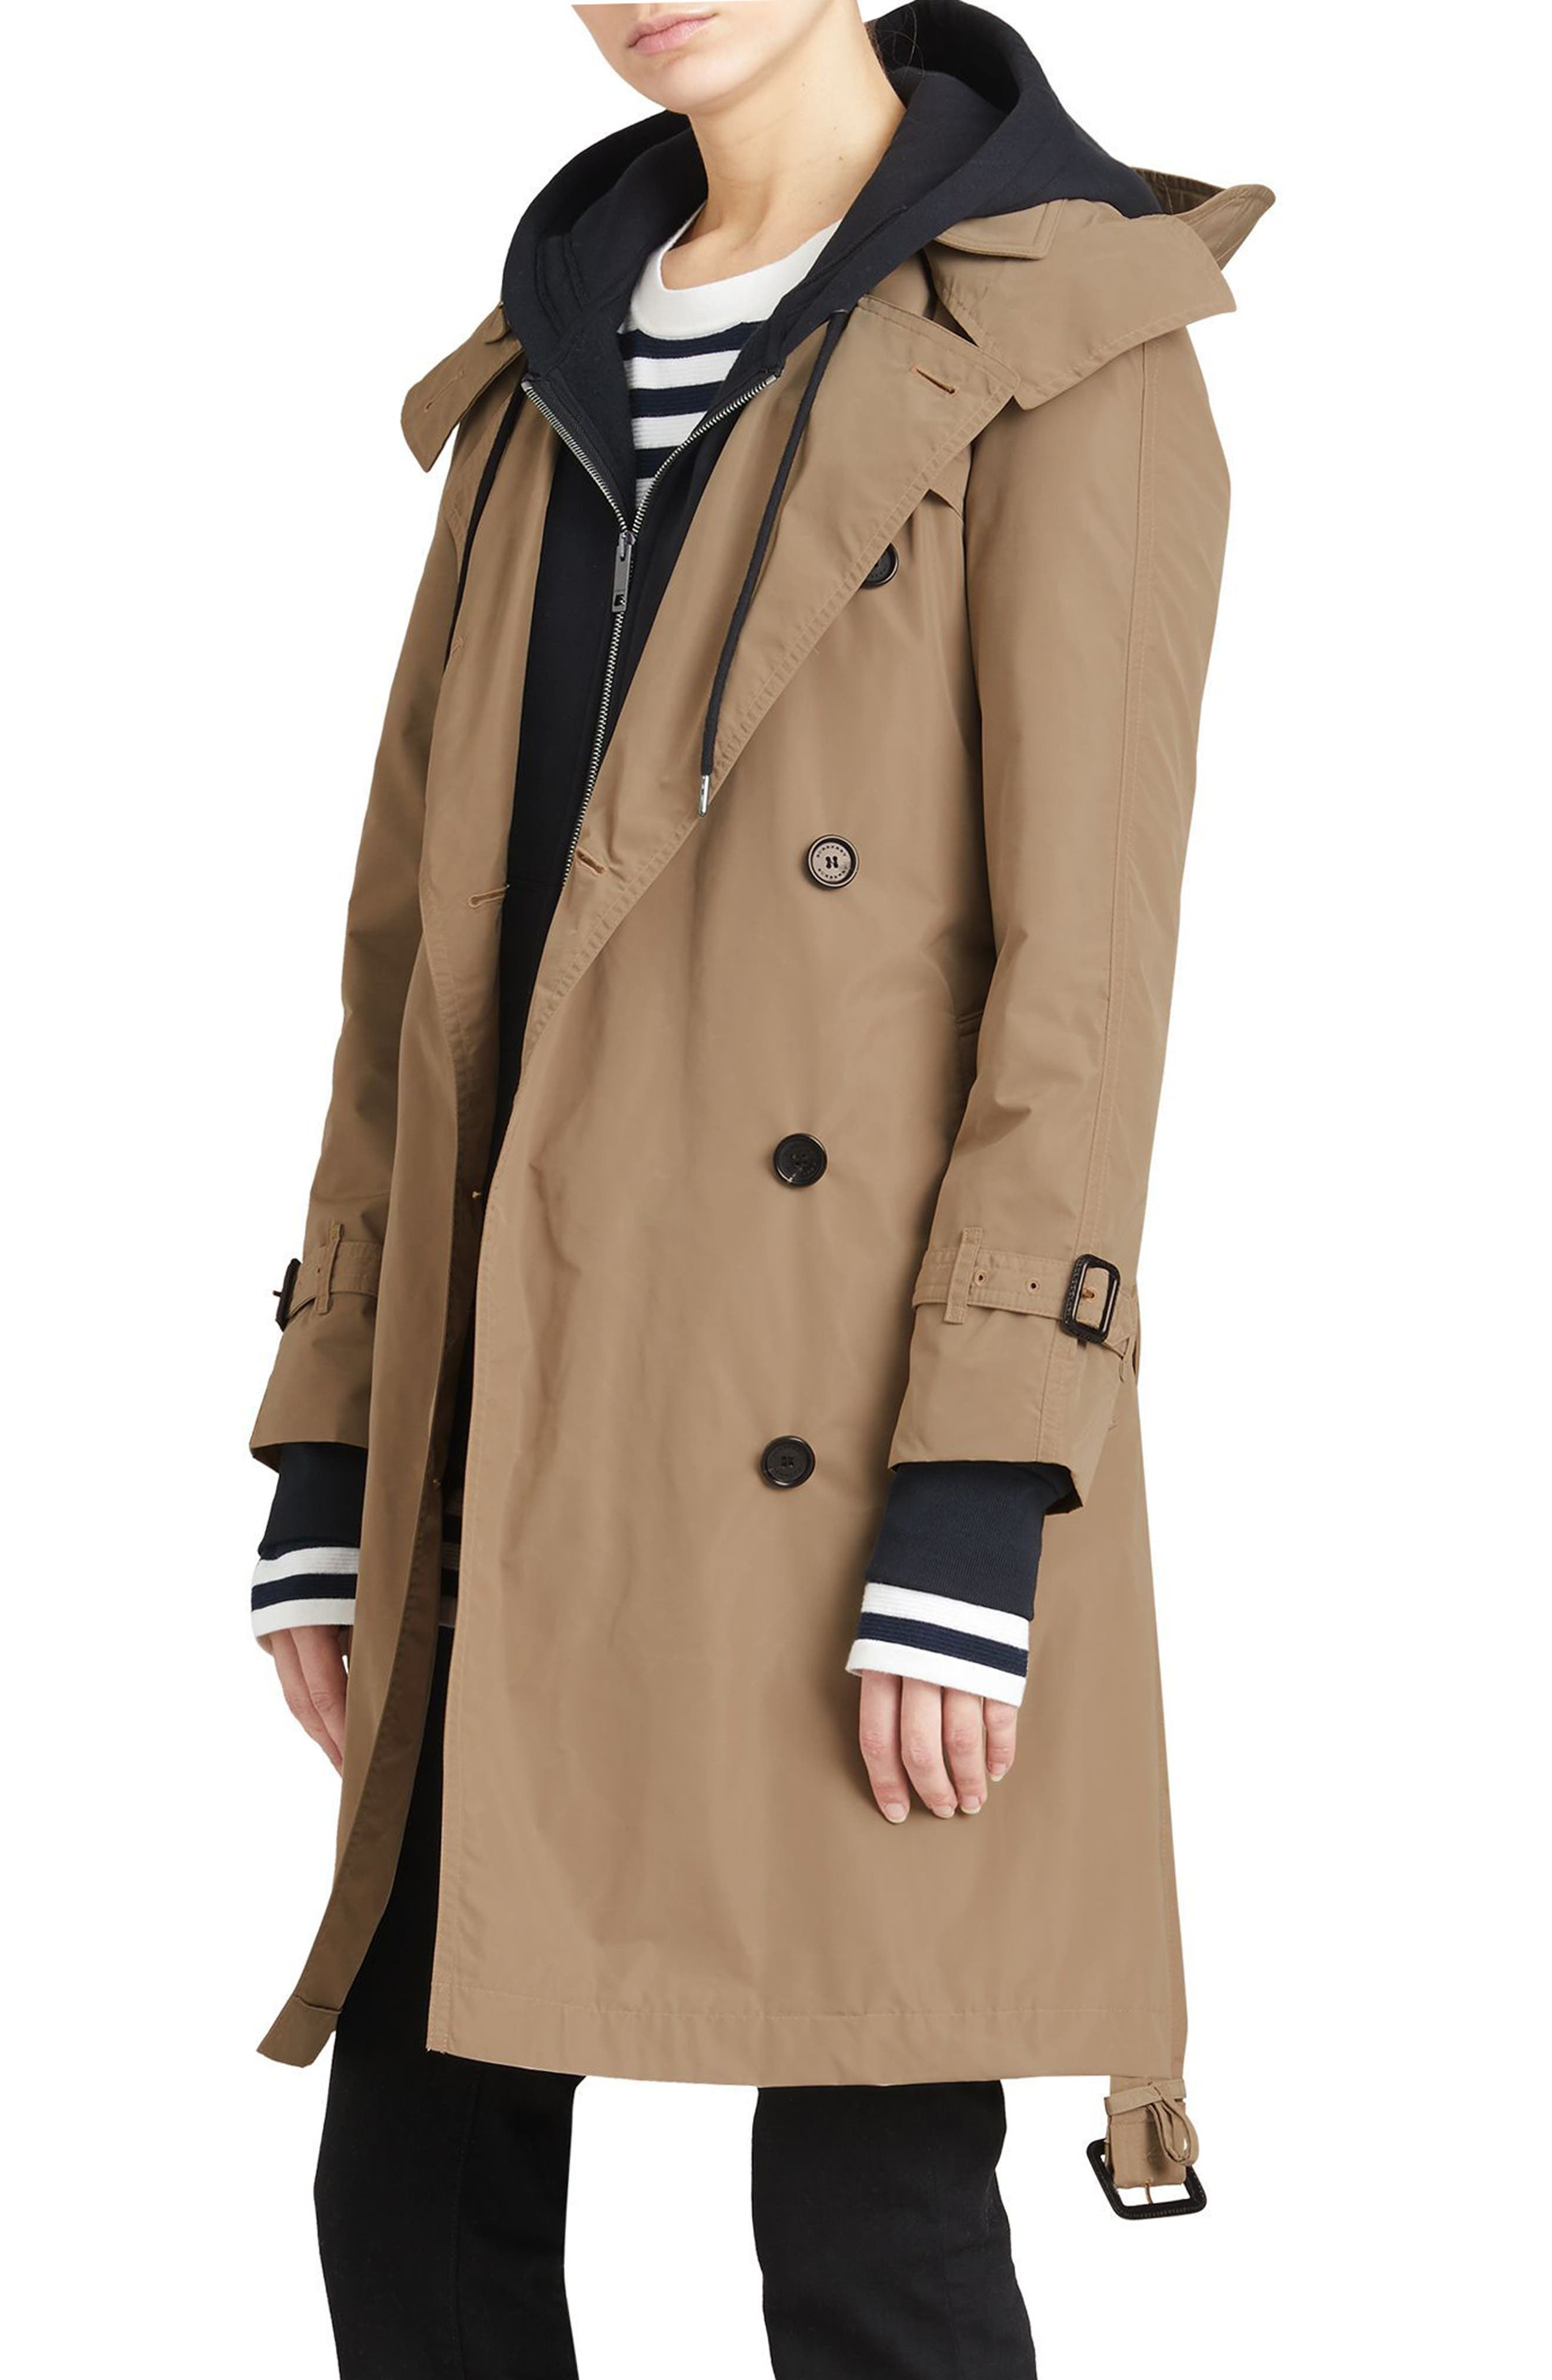 Amberford Taffeta Trench Coat with Detachable Hood,                             Alternate thumbnail 5, color,                             Sisal